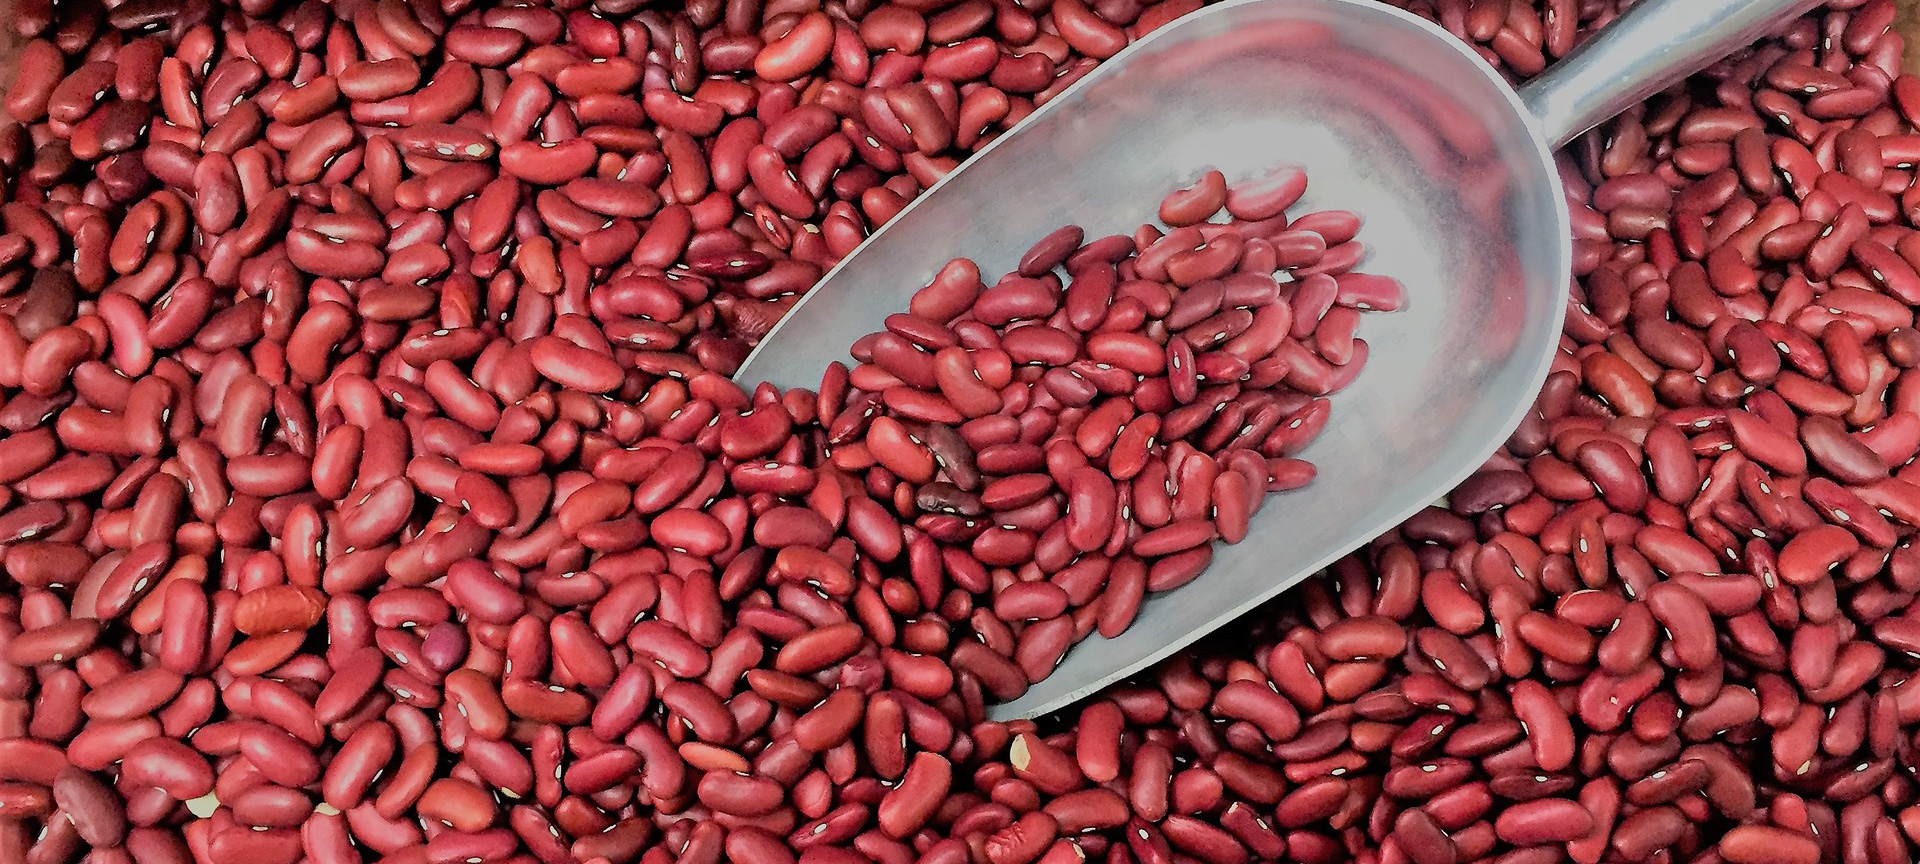 Pulses Low Fat Source, High Source of Fiber